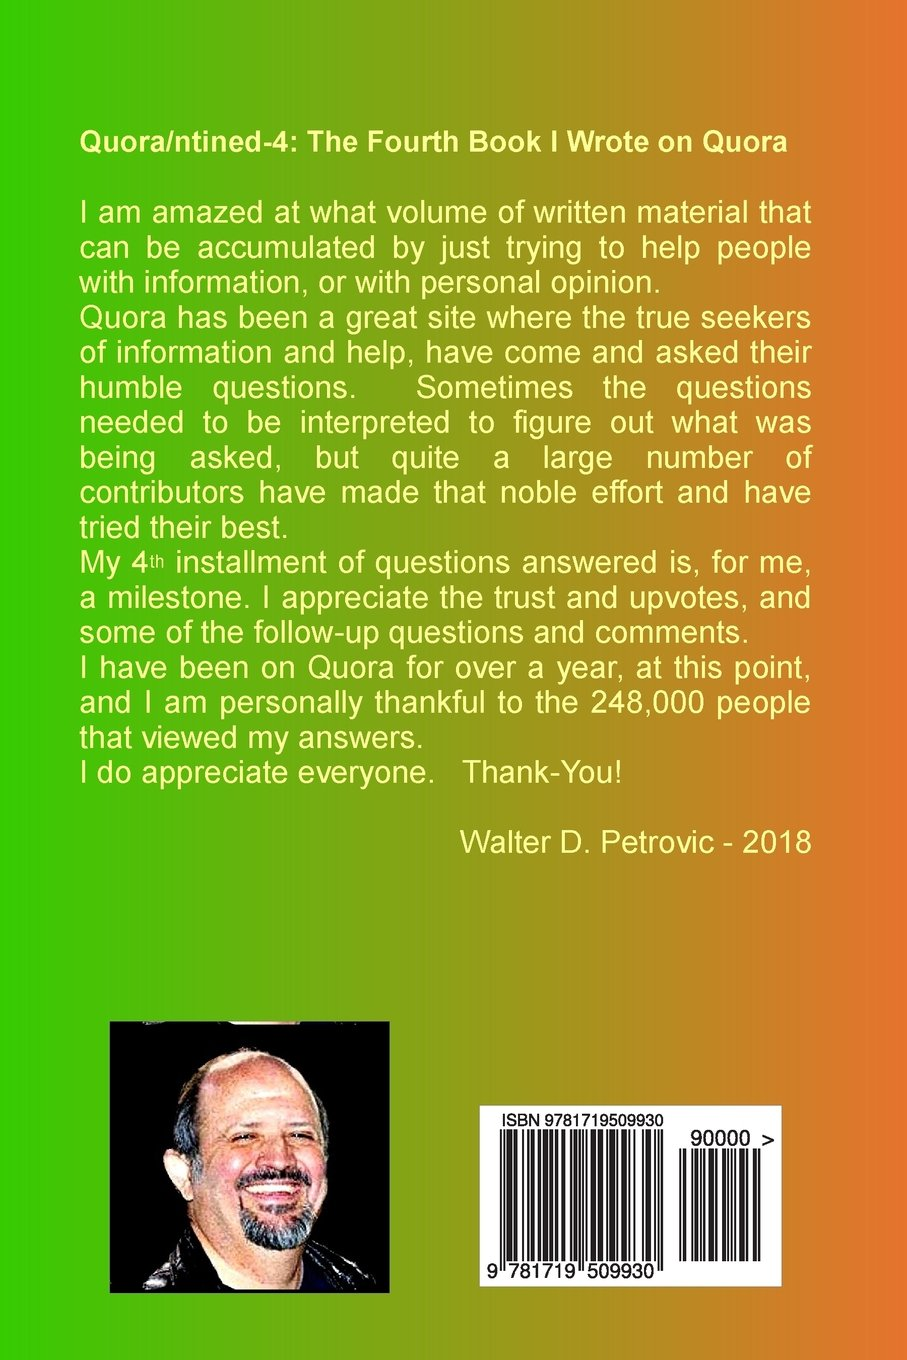 QUORANTINED-4: The 4th Book I Wrote On Quora: Volume 4 QUORANTINED: The Book I Wrote On Quora: Amazon.es: Walter D Petrovic: Libros en idiomas extranjeros